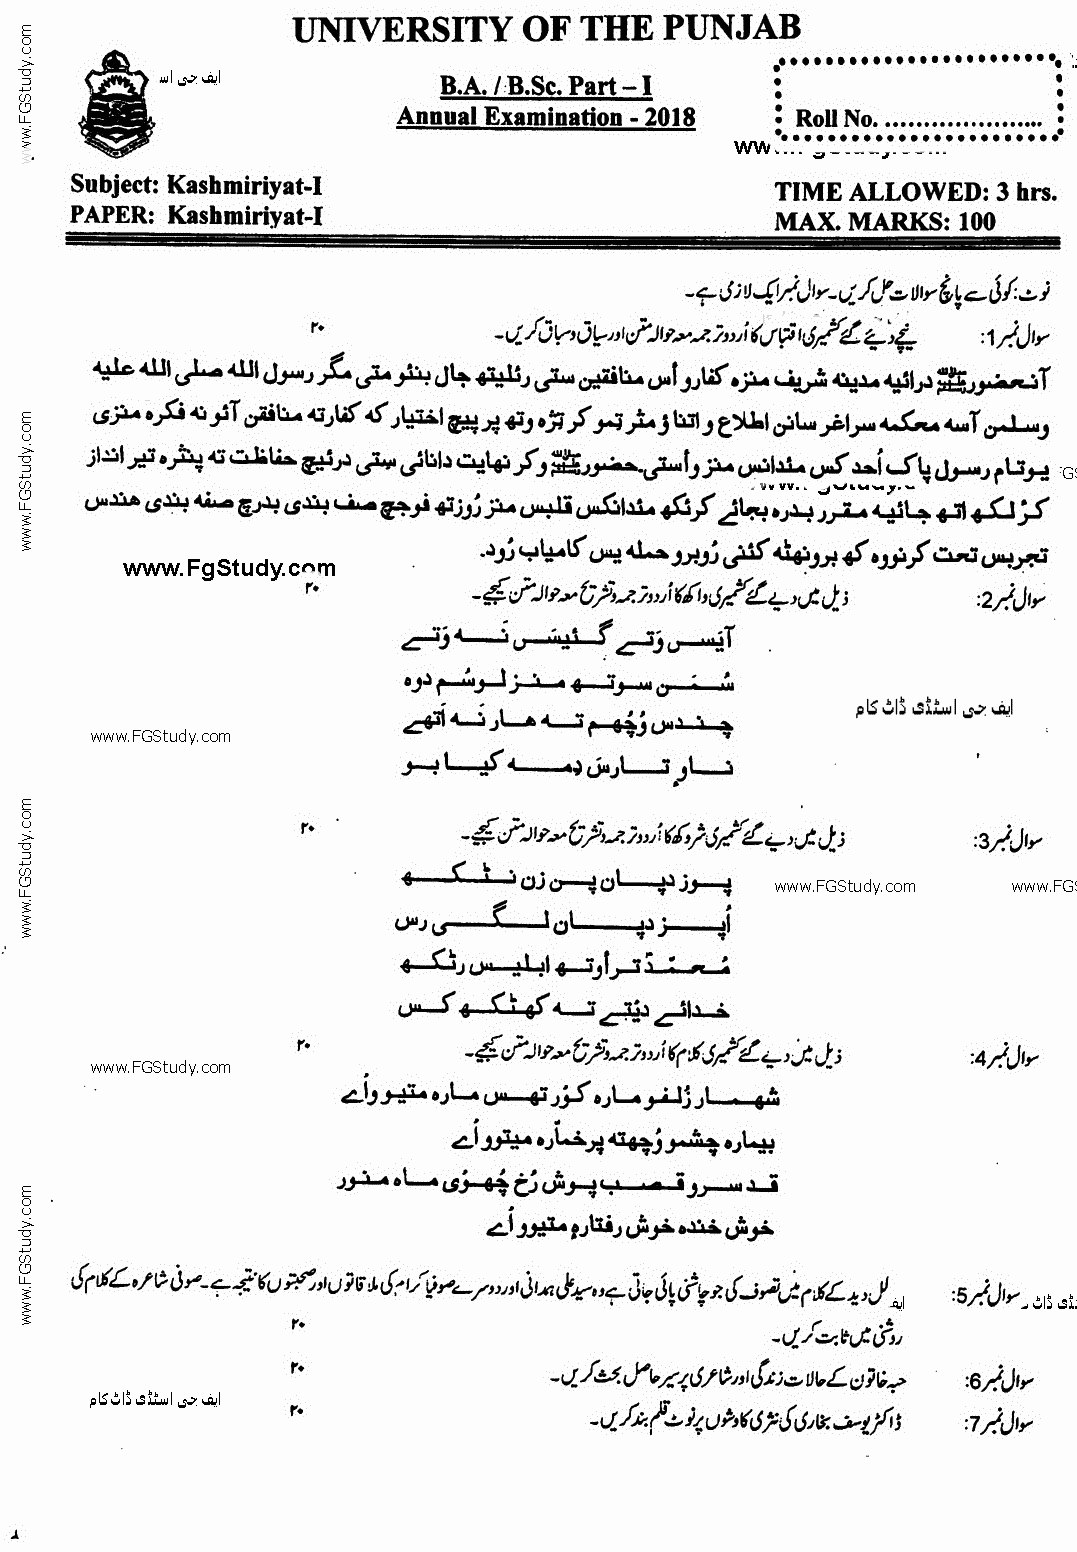 ba part 1 past papers 2018 Kashmiriyat